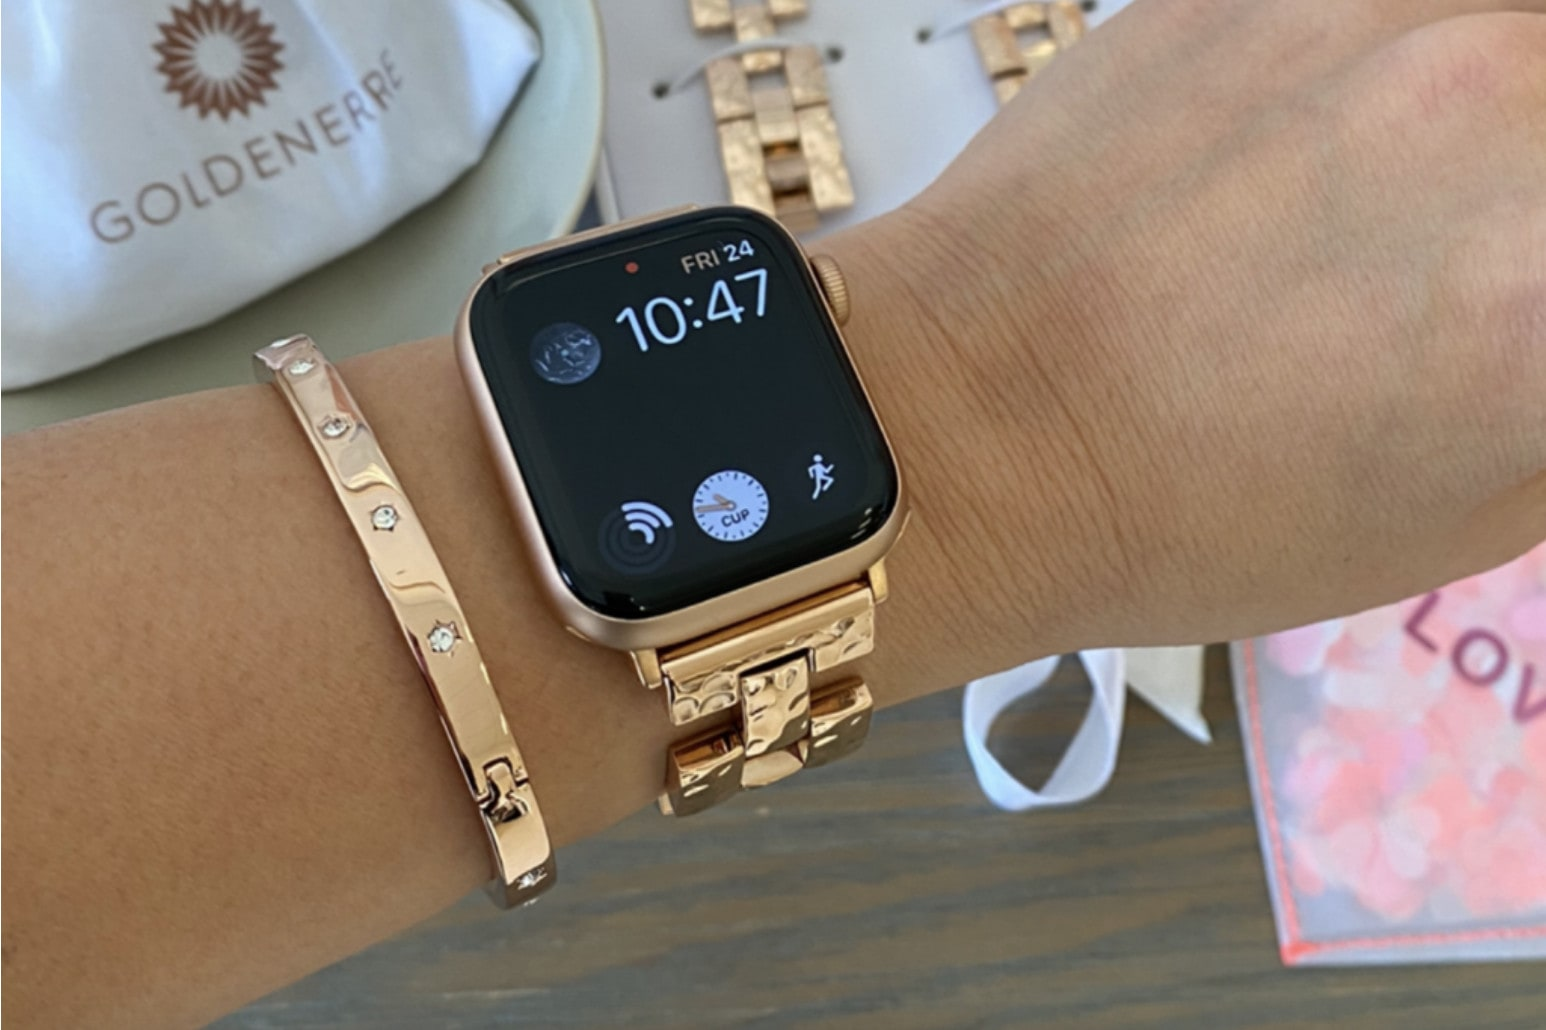 Goldenerre-Apple-Watch-bracelet-2